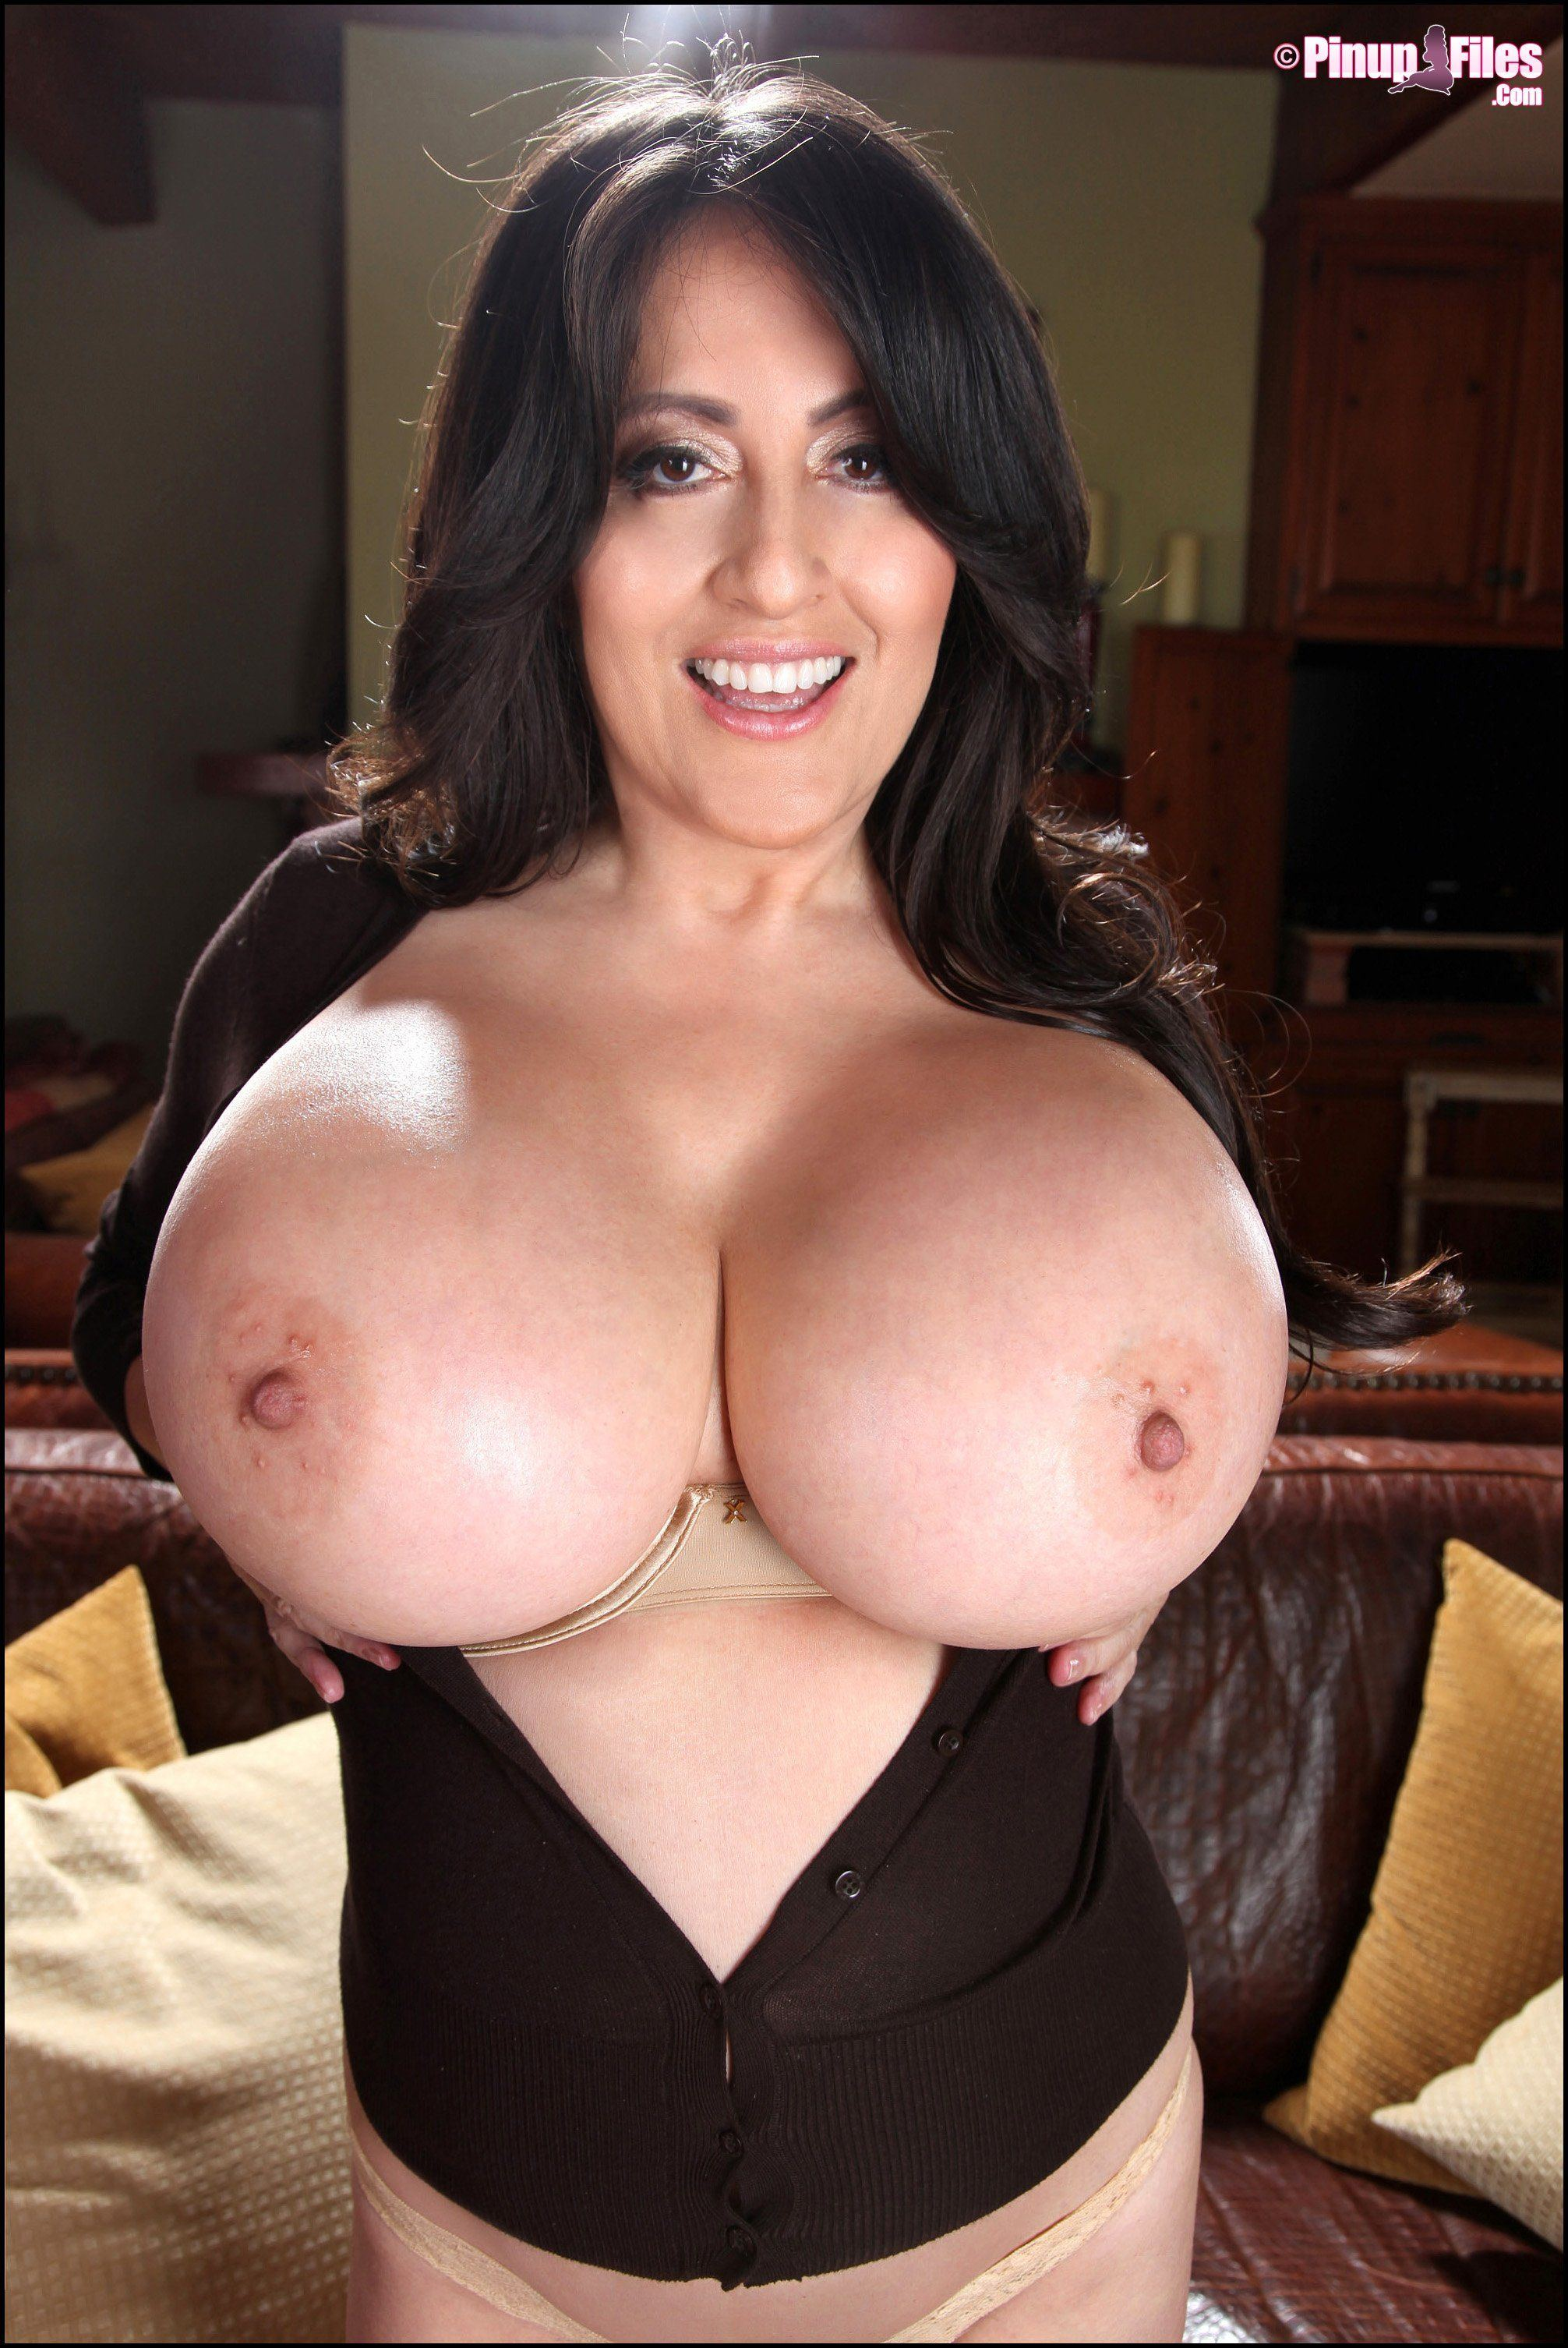 Sandstorm reccomend Antonella kahllo big boobs